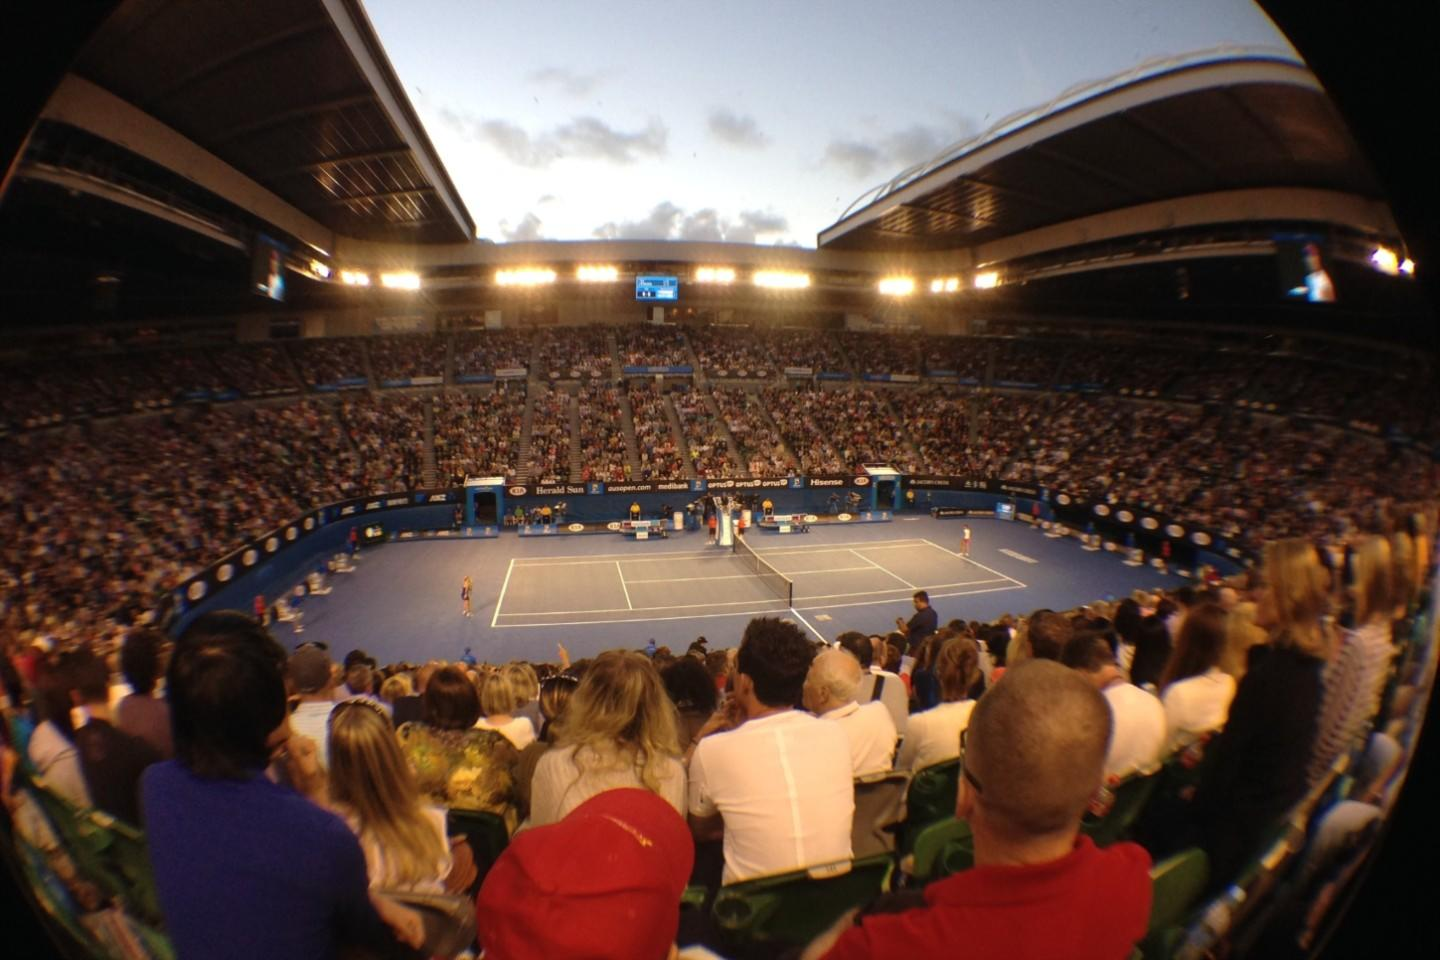 volvo car open tickets | volvo car open tennis 2019 dates and